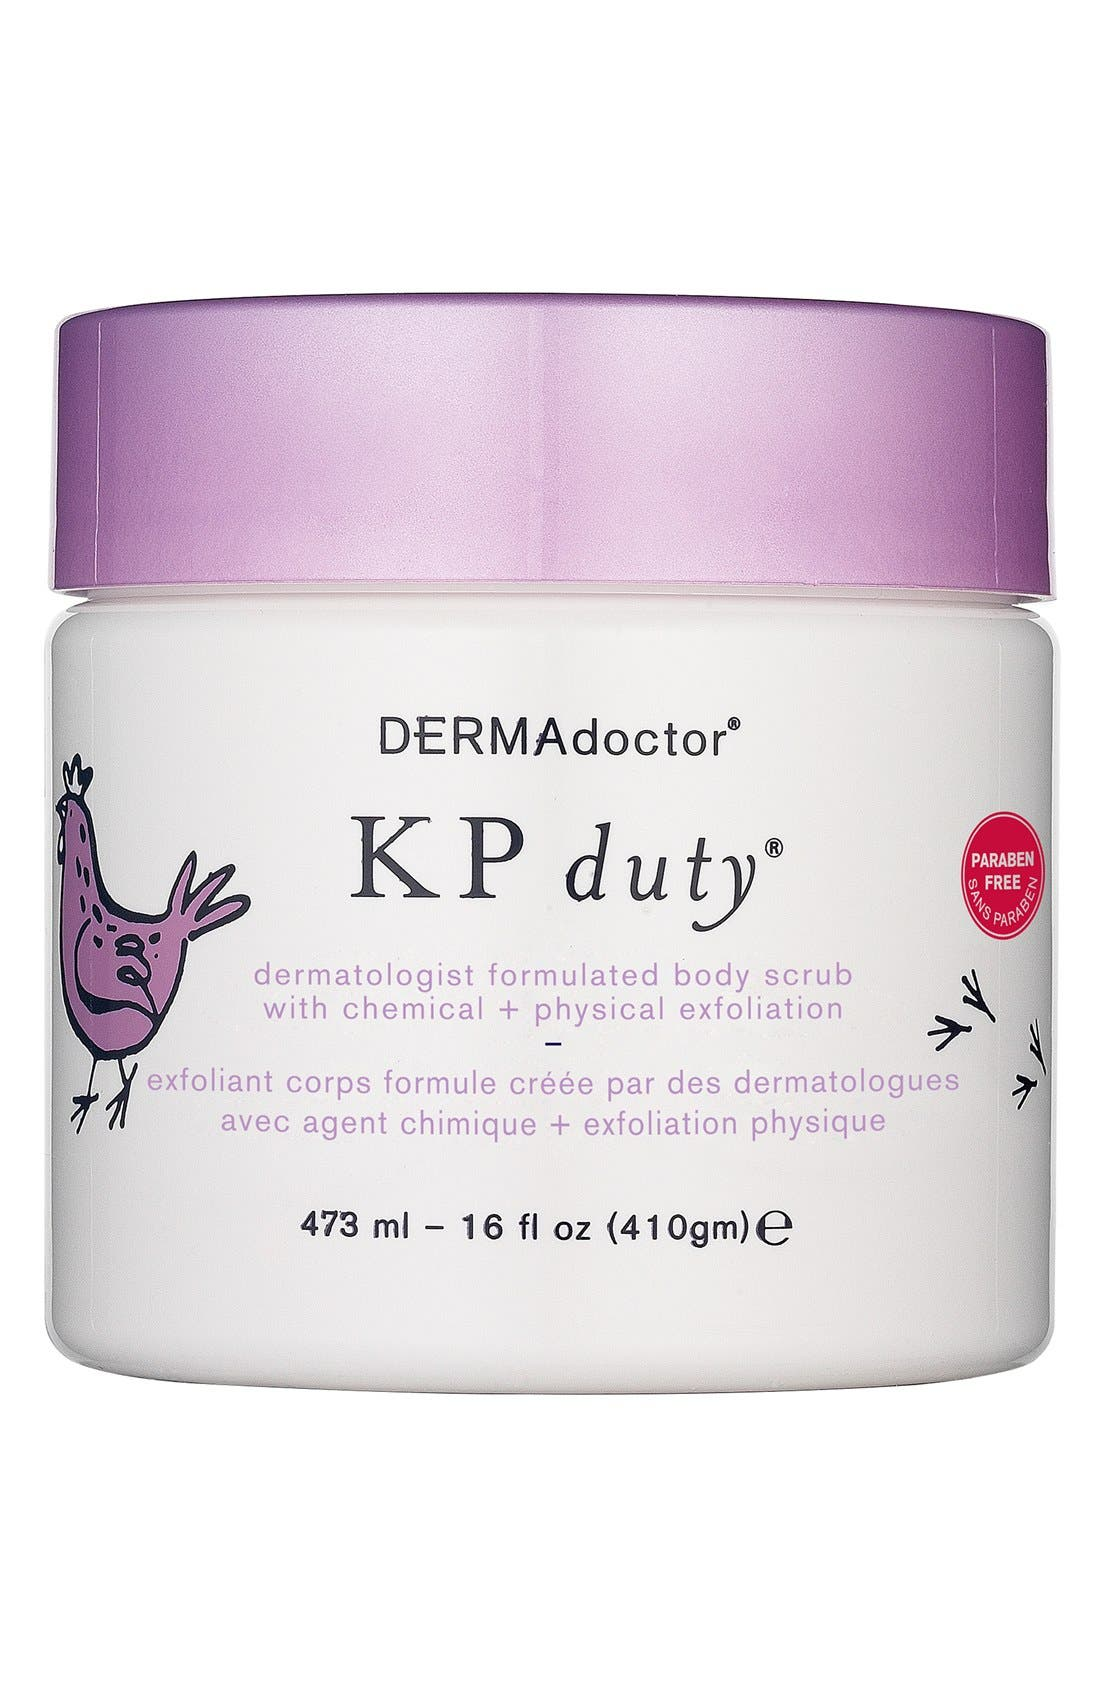 'KP duty<sup>®</sup>' Dermatologist Formulated Body Scrub with Chemical + Physical Exfoliation,                             Main thumbnail 1, color,                             000